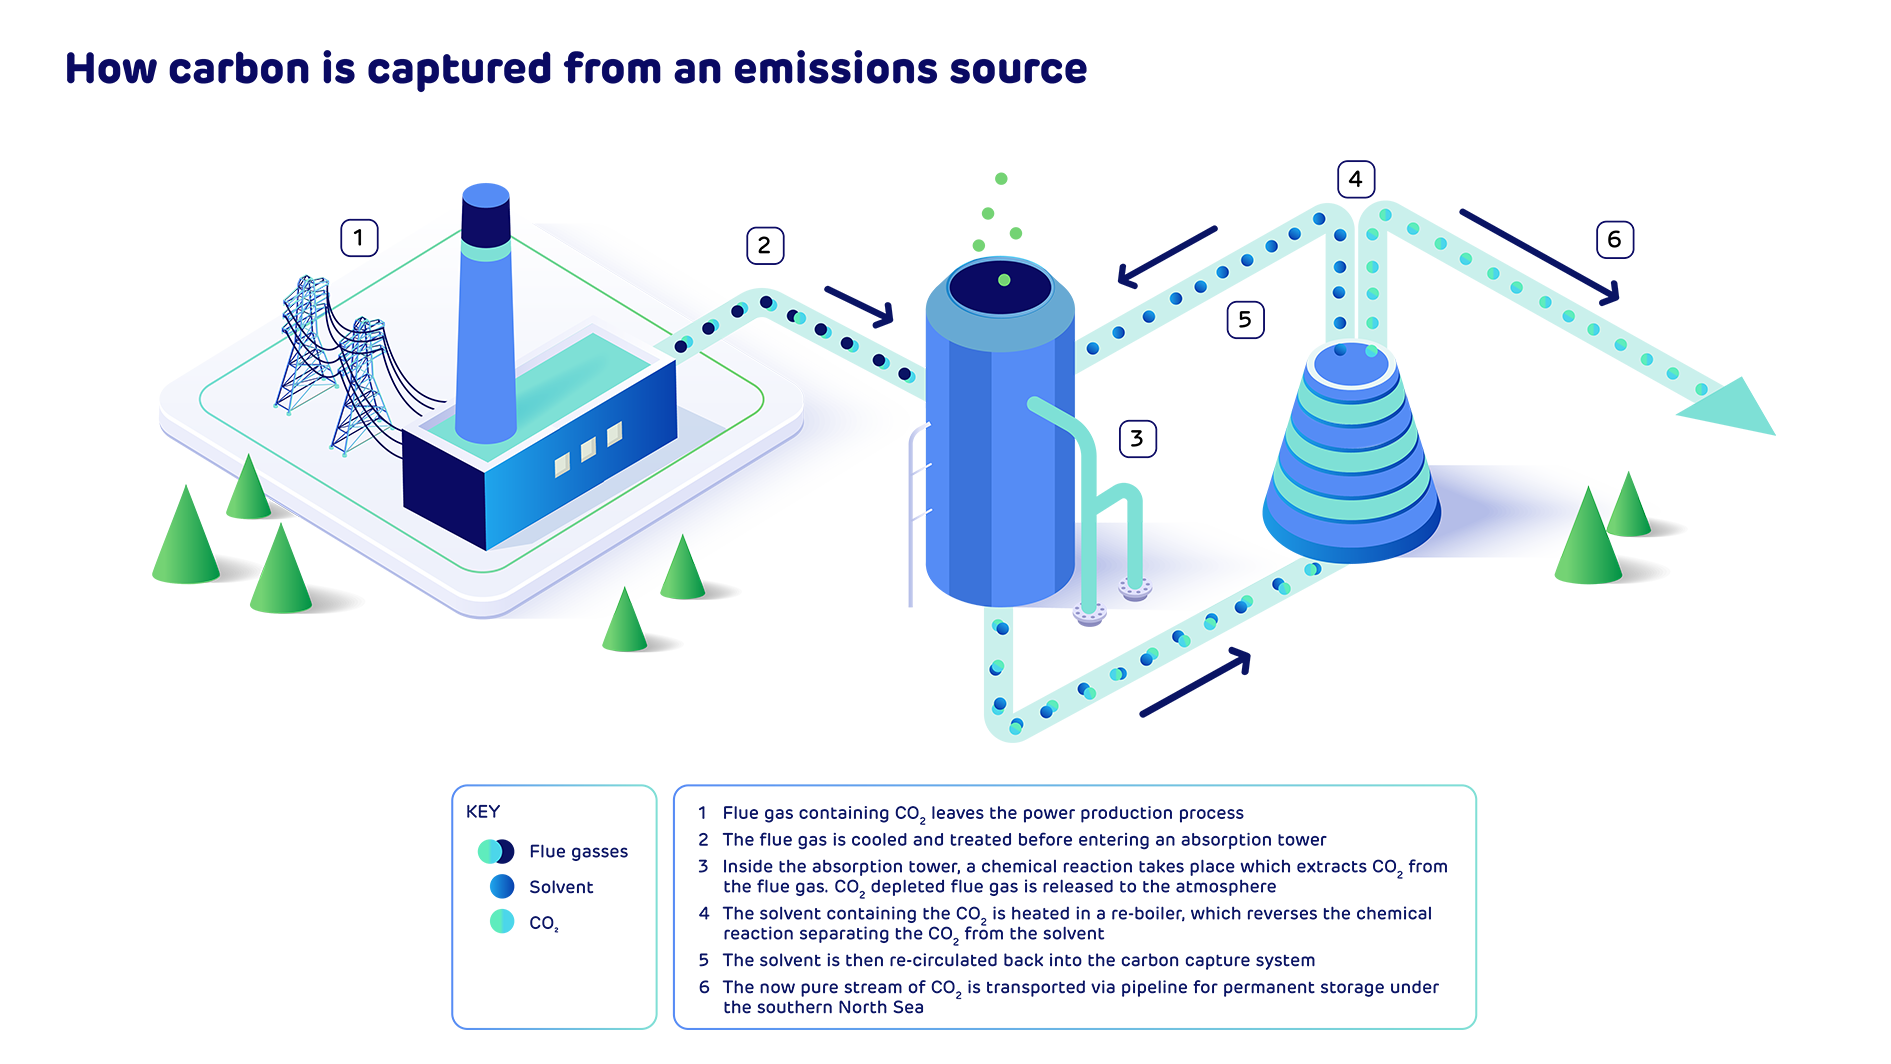 Graphic showing how carbon is captured from an emissions source